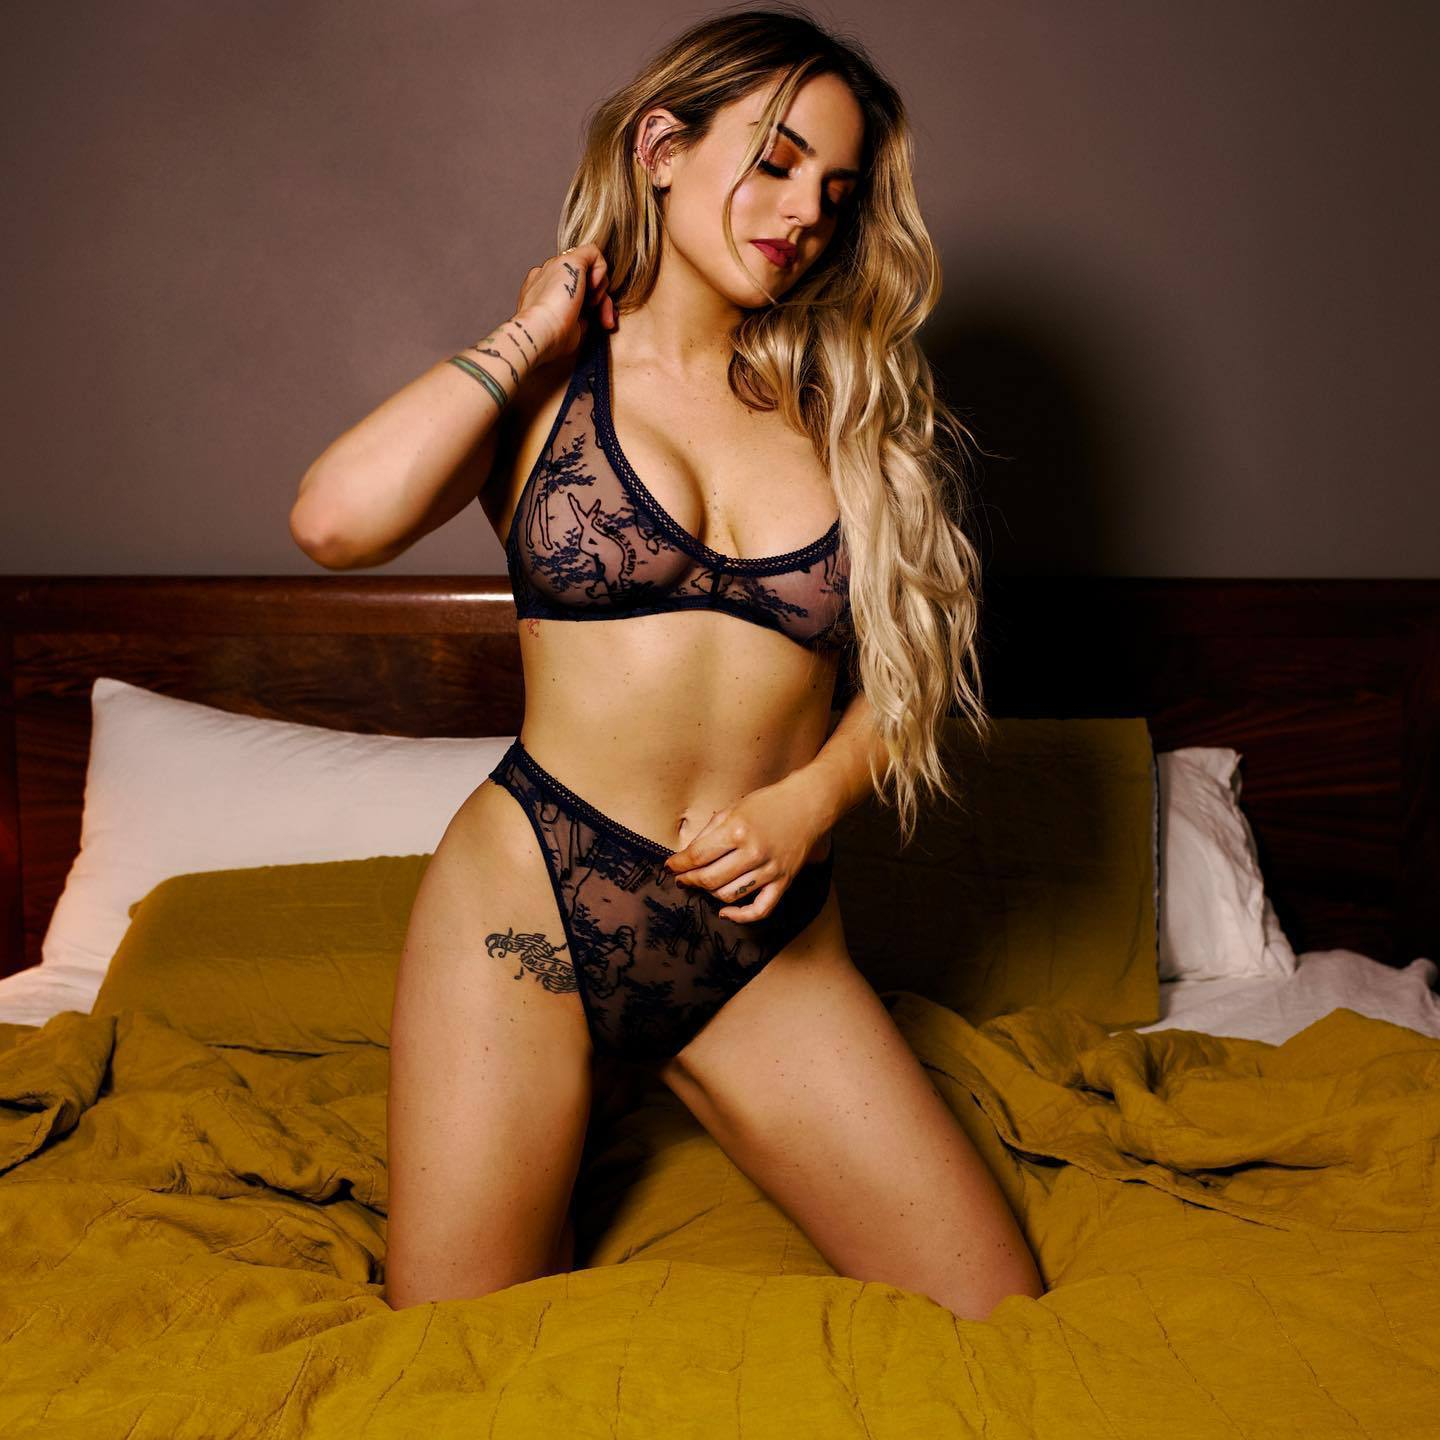 Jojo Levesque – Hot Boobs And Ass In Savage X Fenty Lingerie Photoshoot 0002